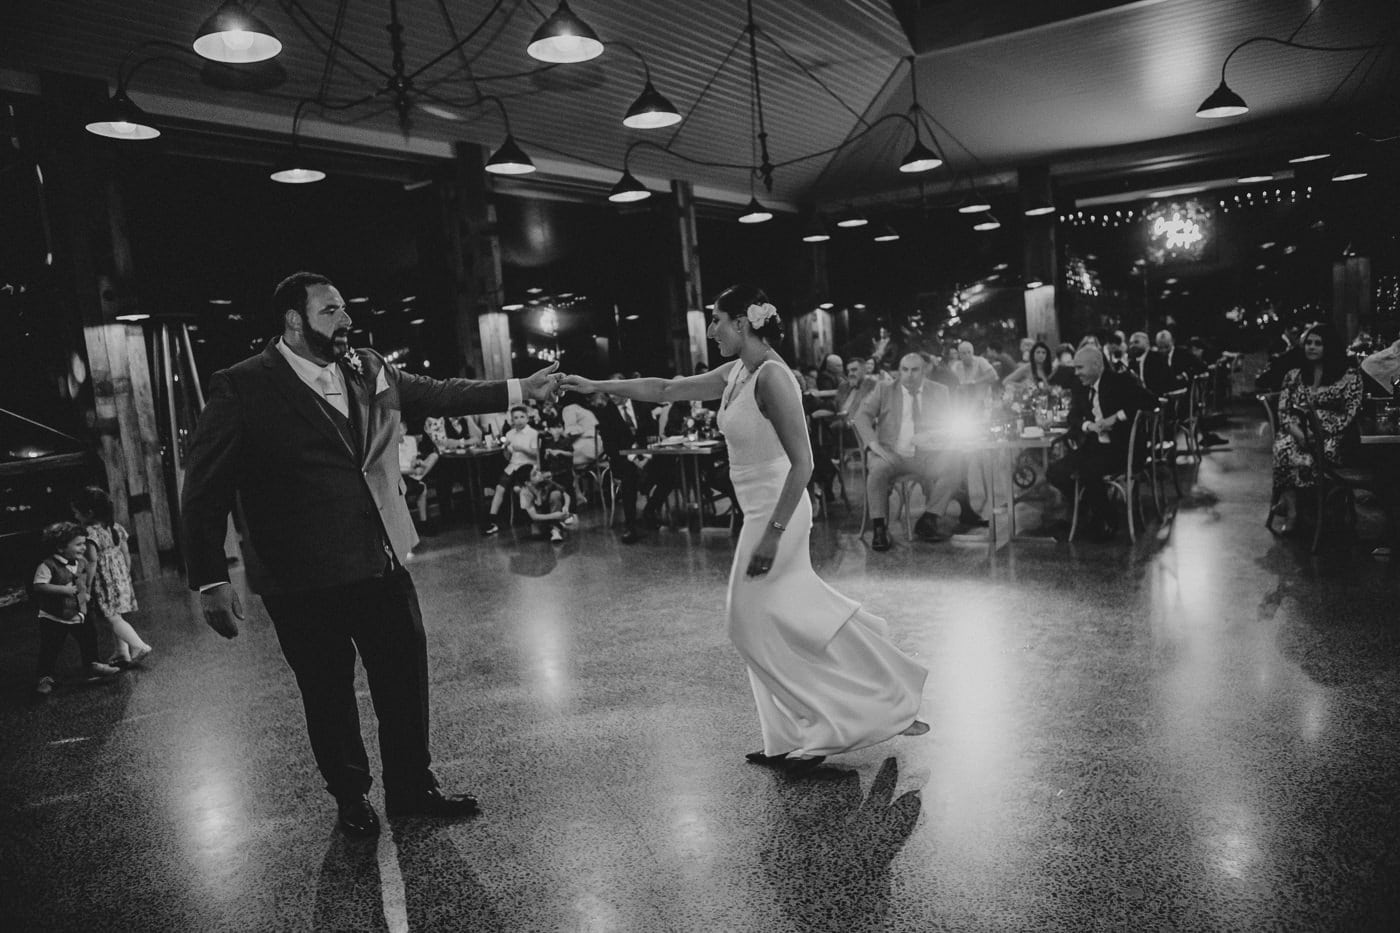 First Dance in Glass Pavillion - Black and White Wedding Photo